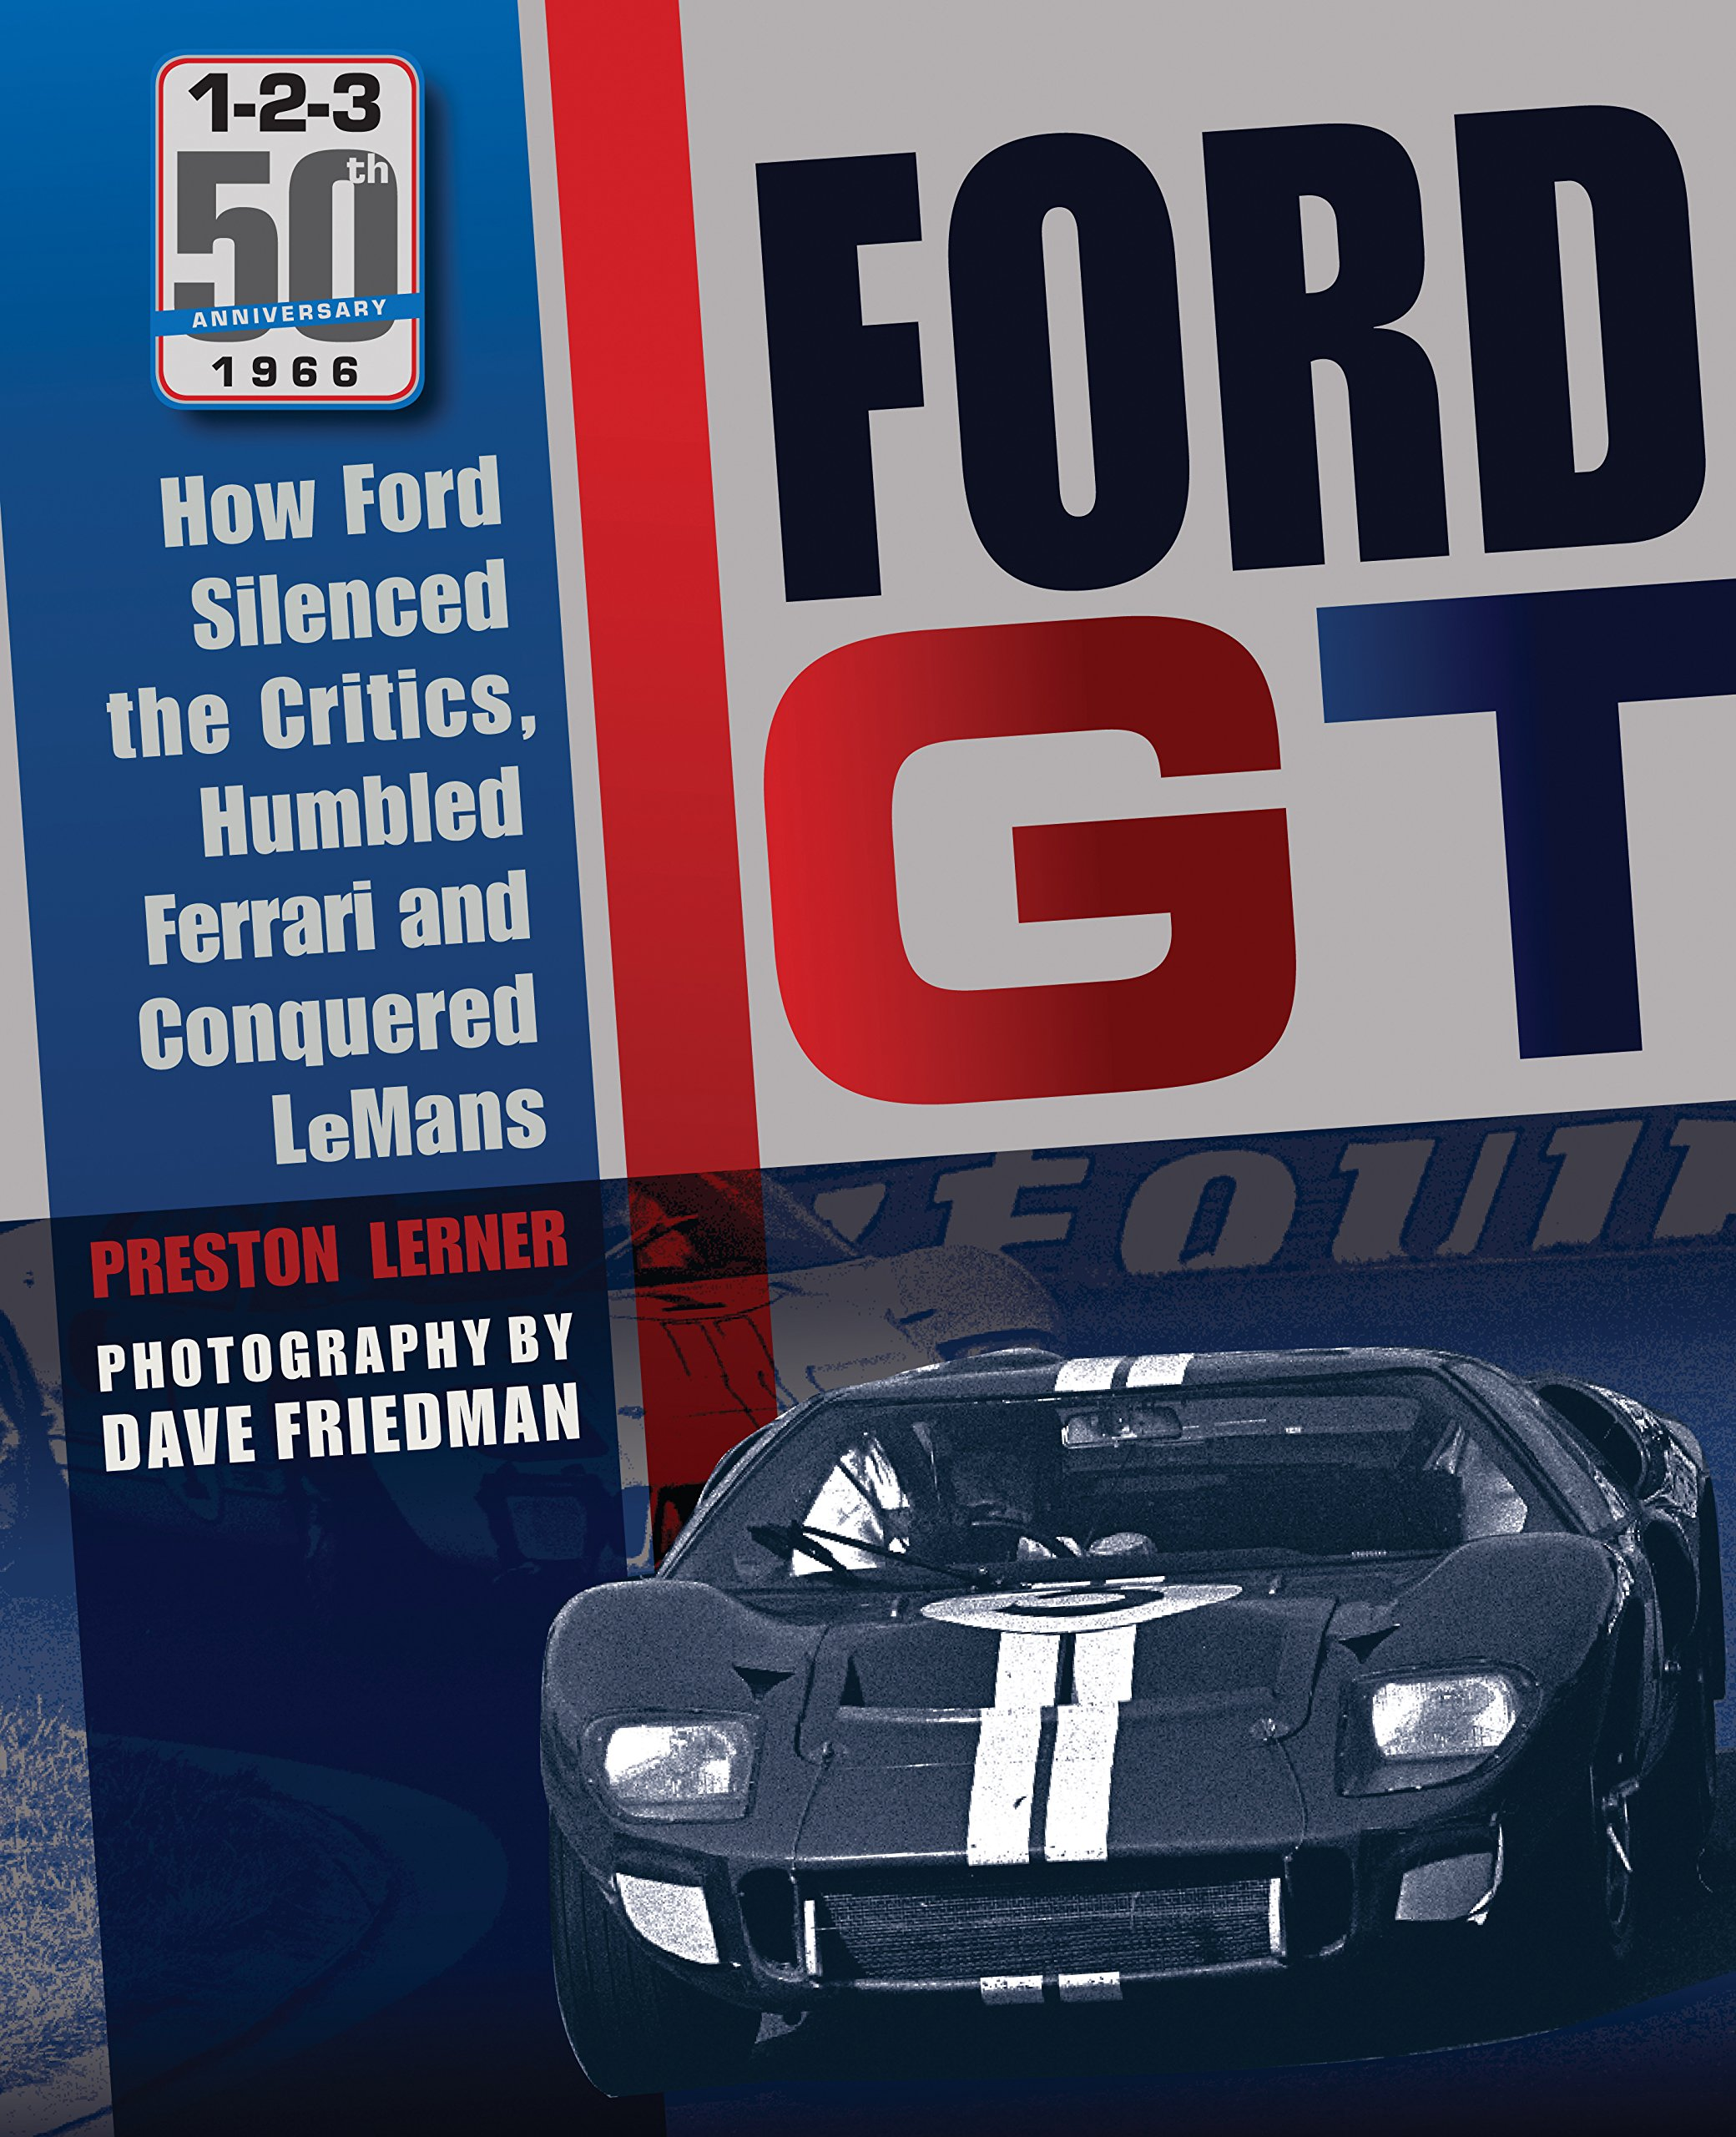 Ford Gt How Ford Silenced The Critics Humbled Ferrari And Conquered Le Mans Lerner Preston Friedman Dave 9780760347874 Amazon Com Books